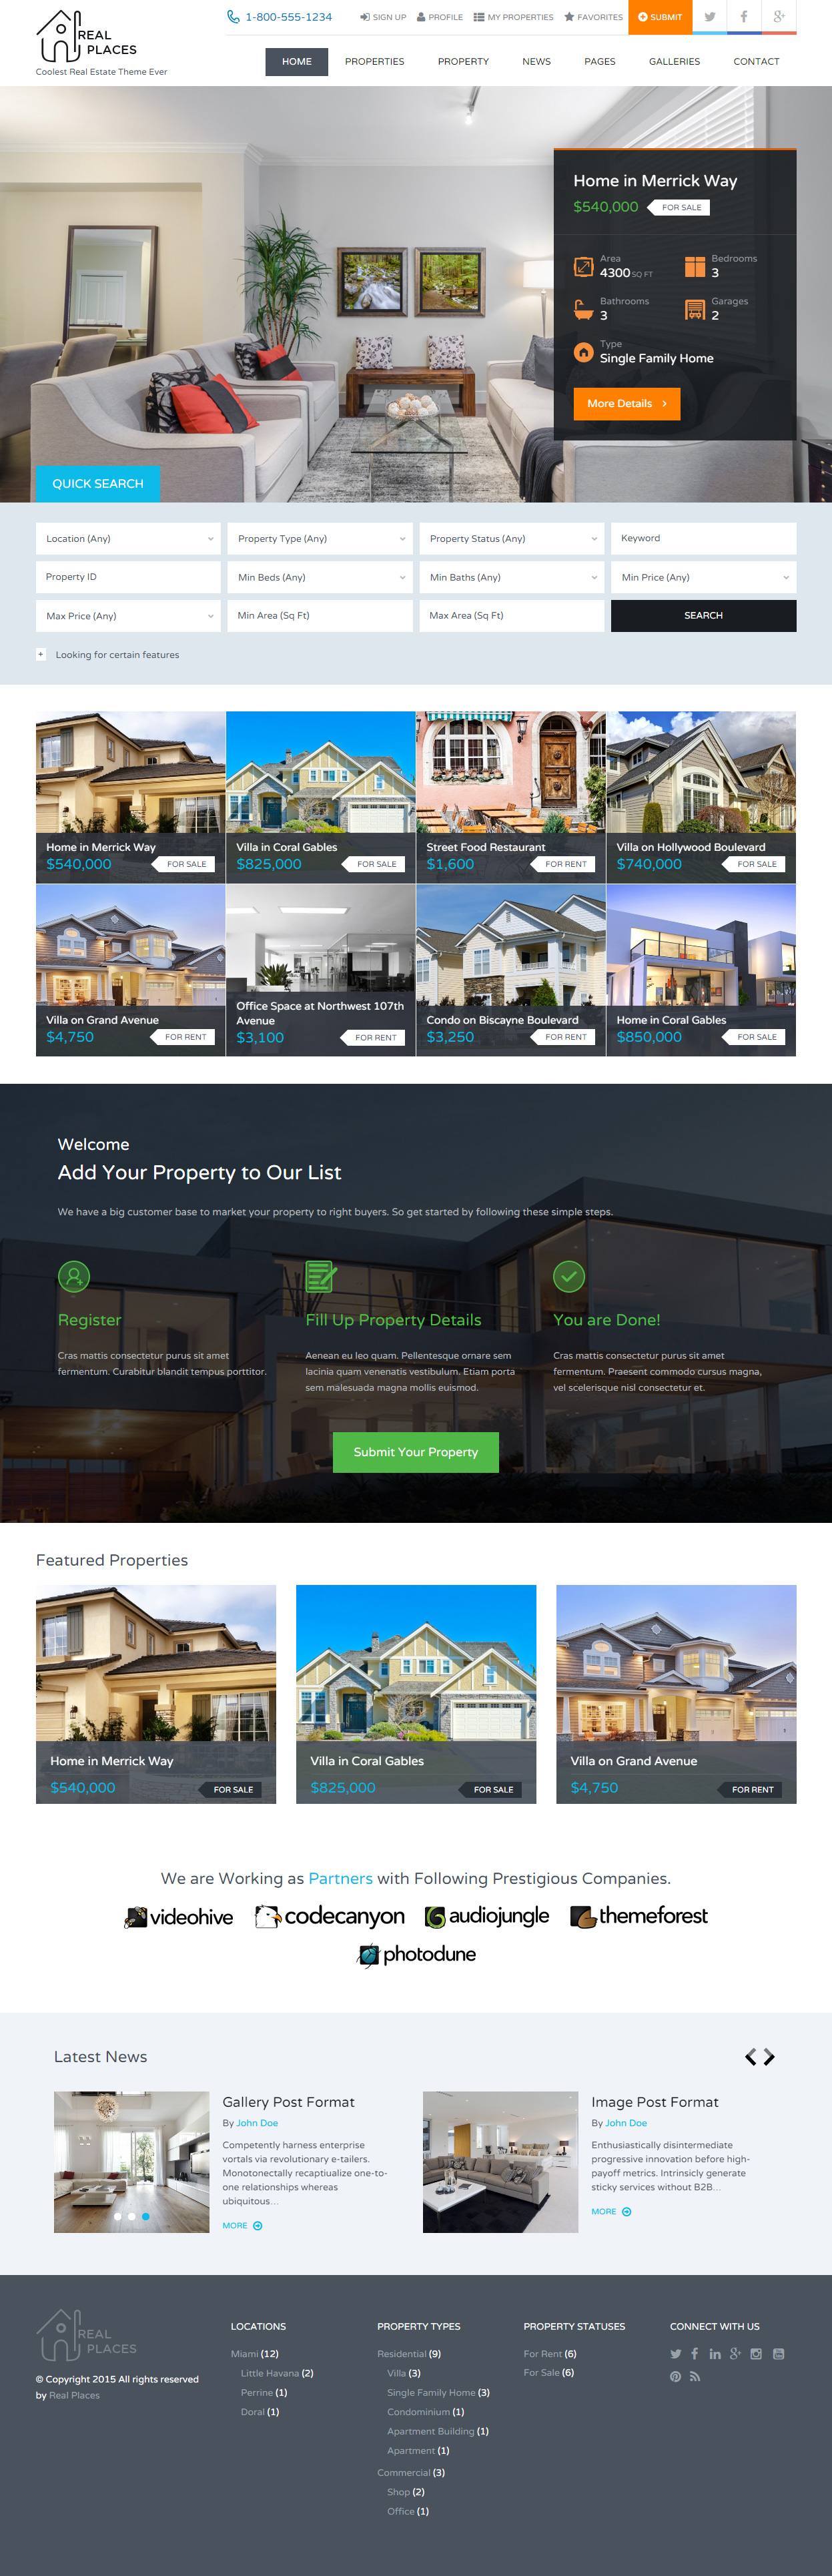 Real Estate Template%0A Real Places is Premium Responsive Real Estate HTML  Template  Retina Ready   Flat Design